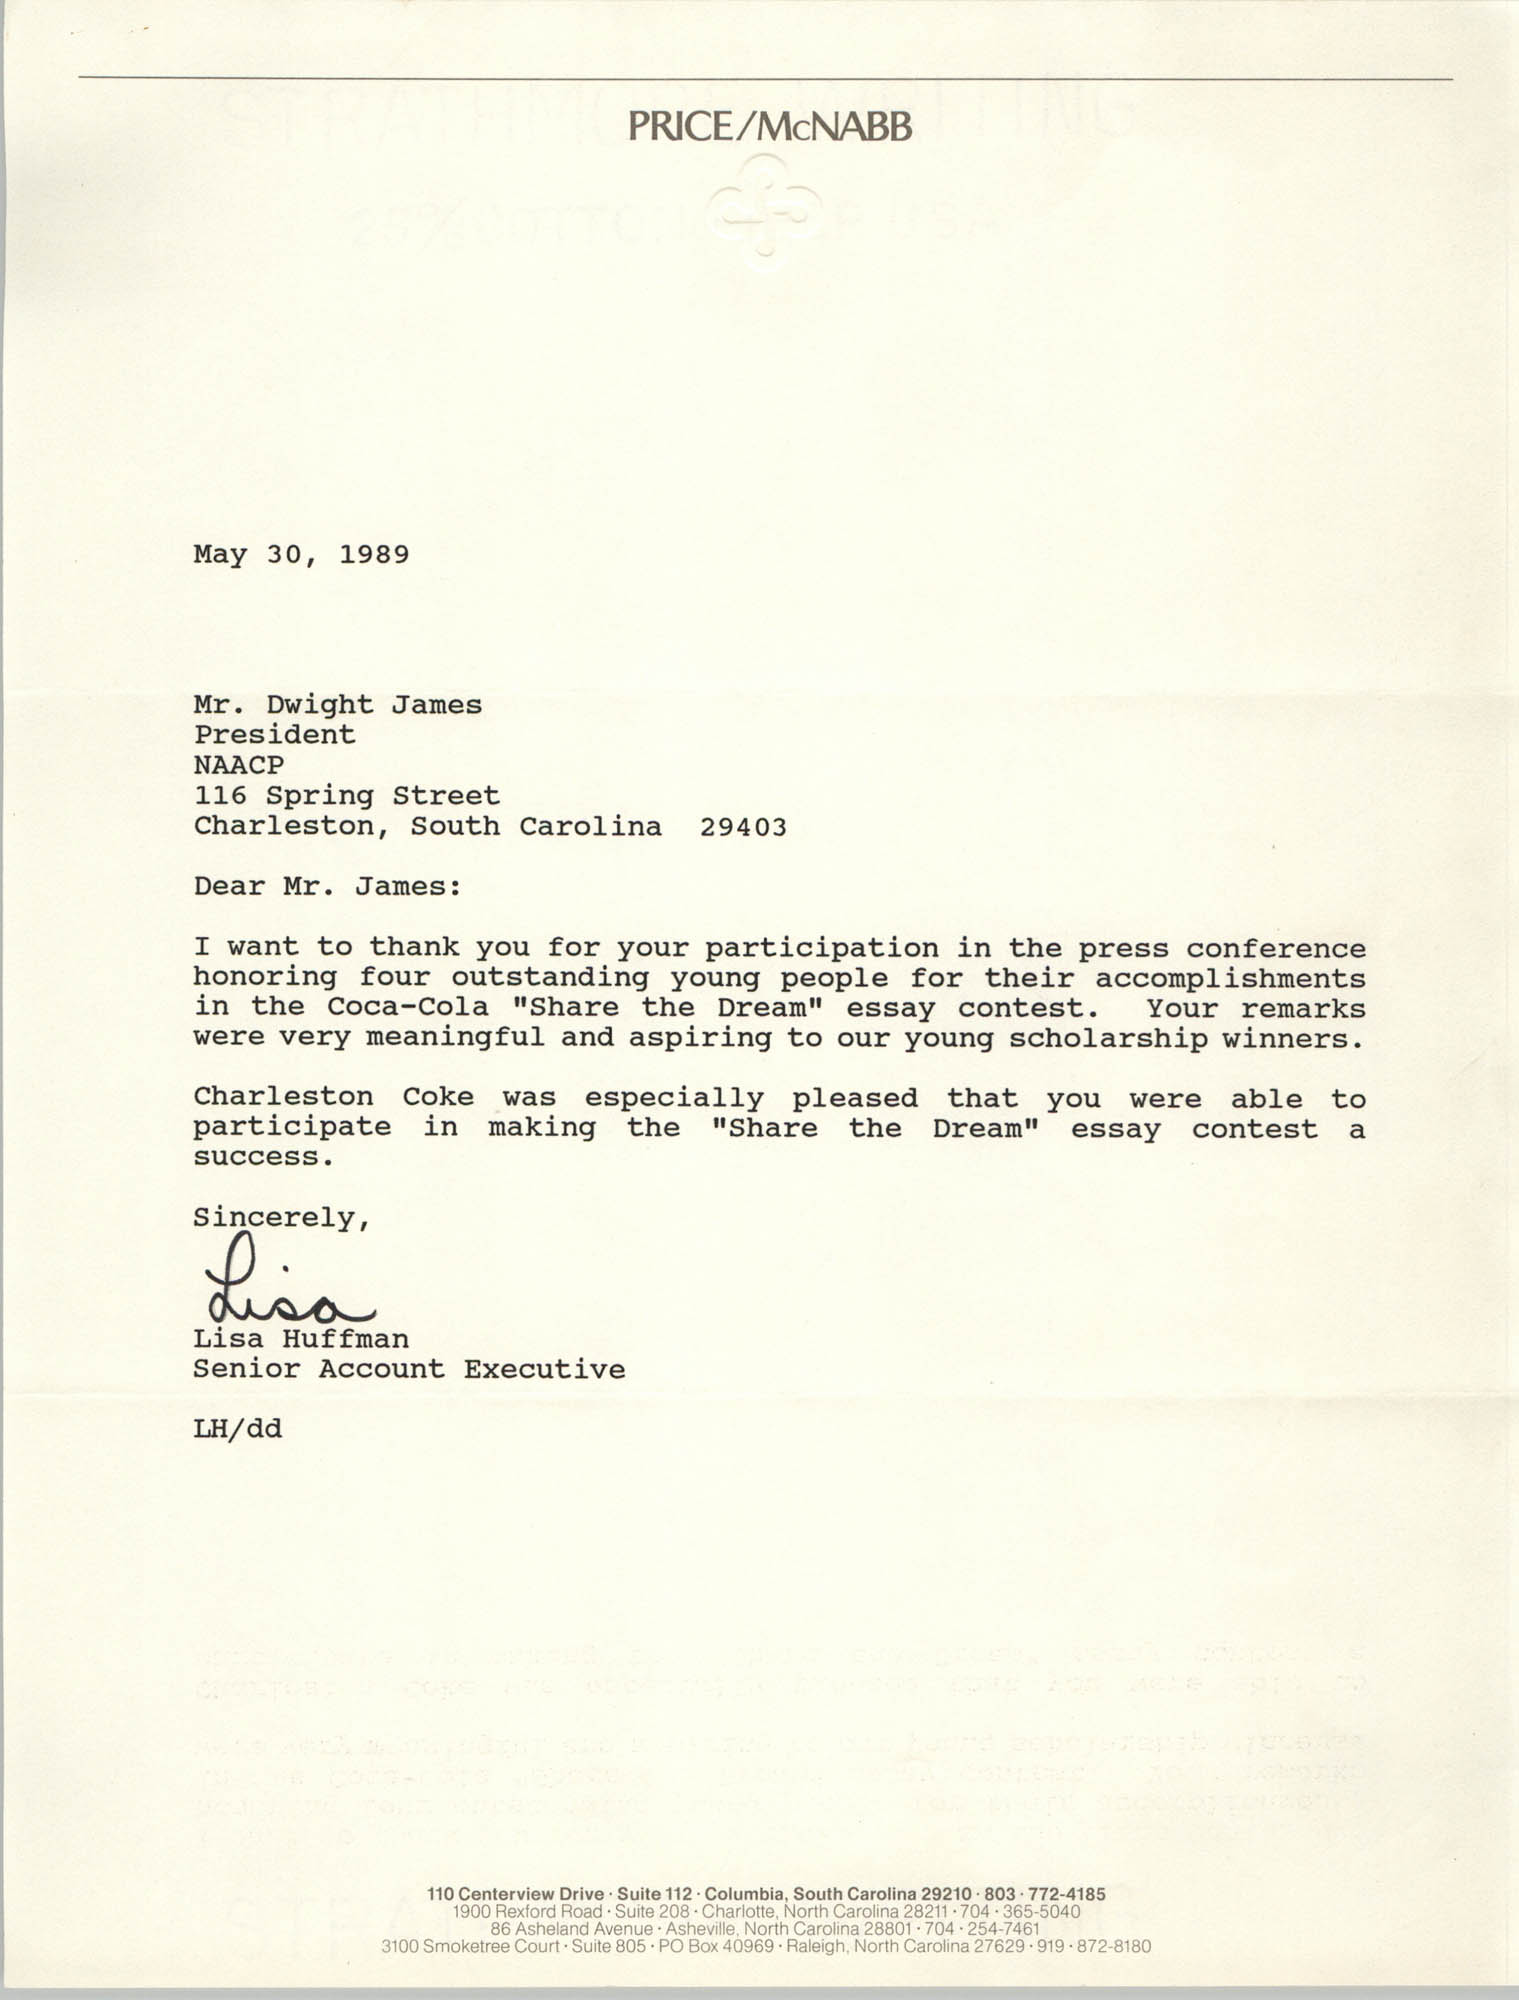 Letter from Lisa Huffman to Dwight James, May 30, 1989